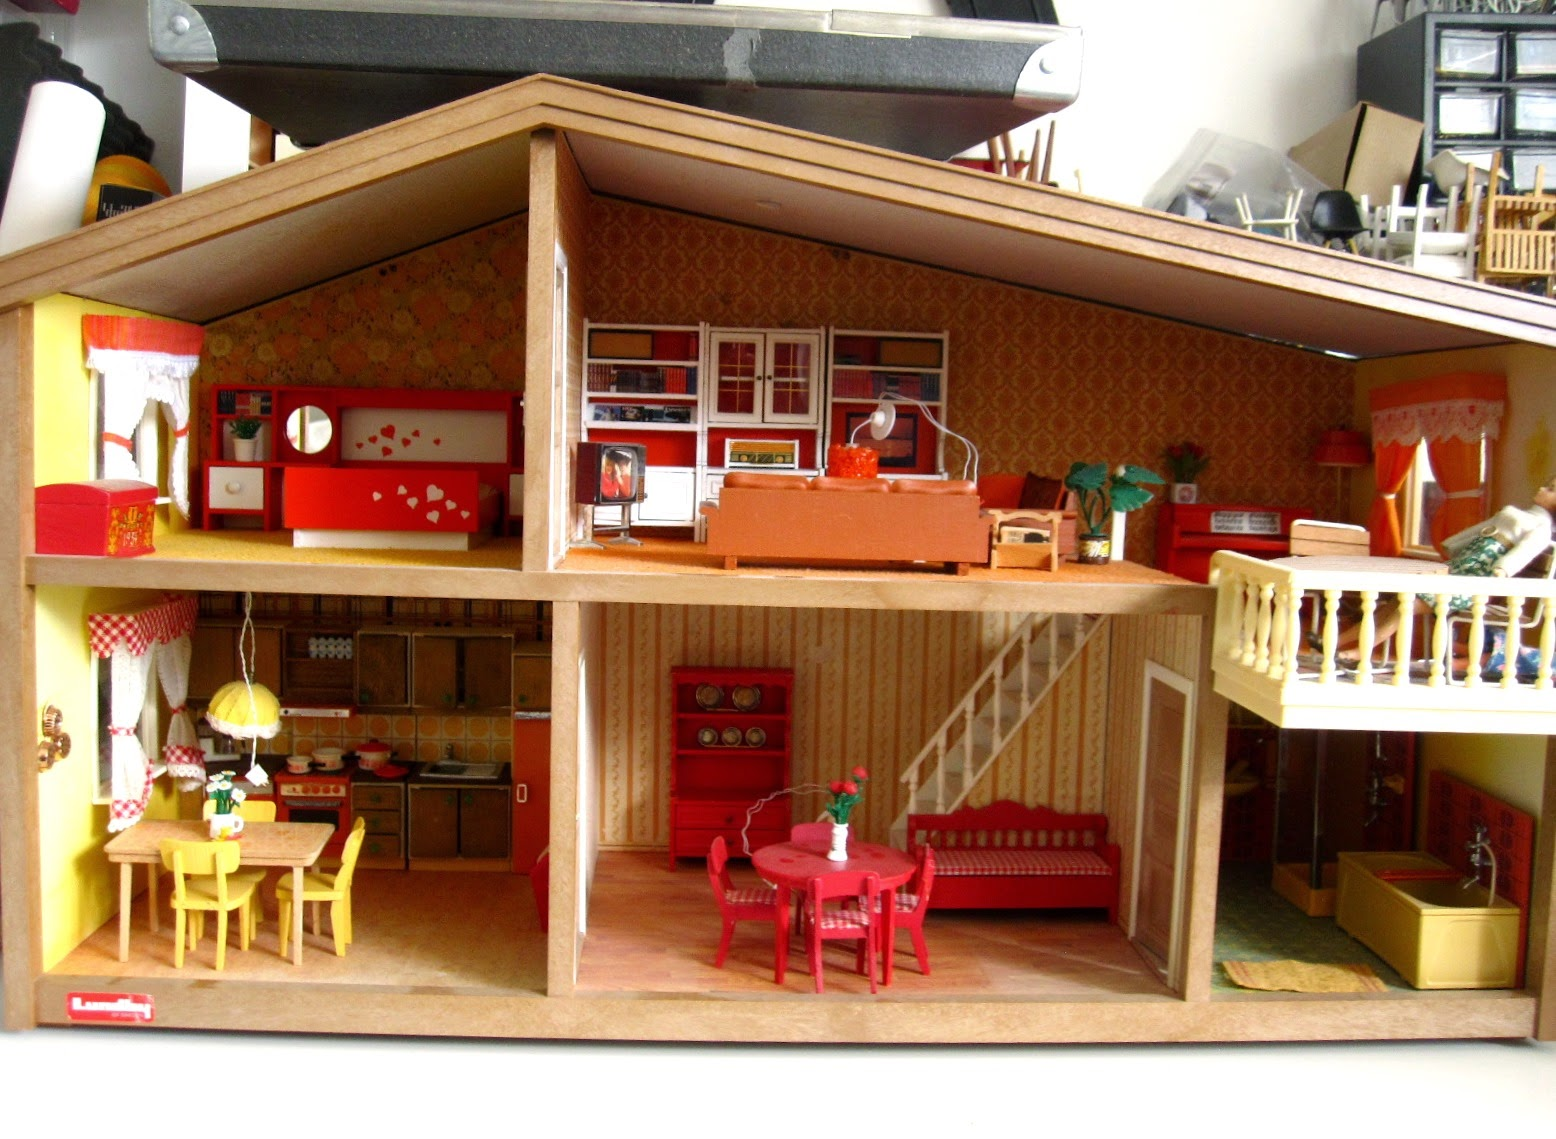 1975 Lundby dolls' house, furnished with vintage Lundby furniture.